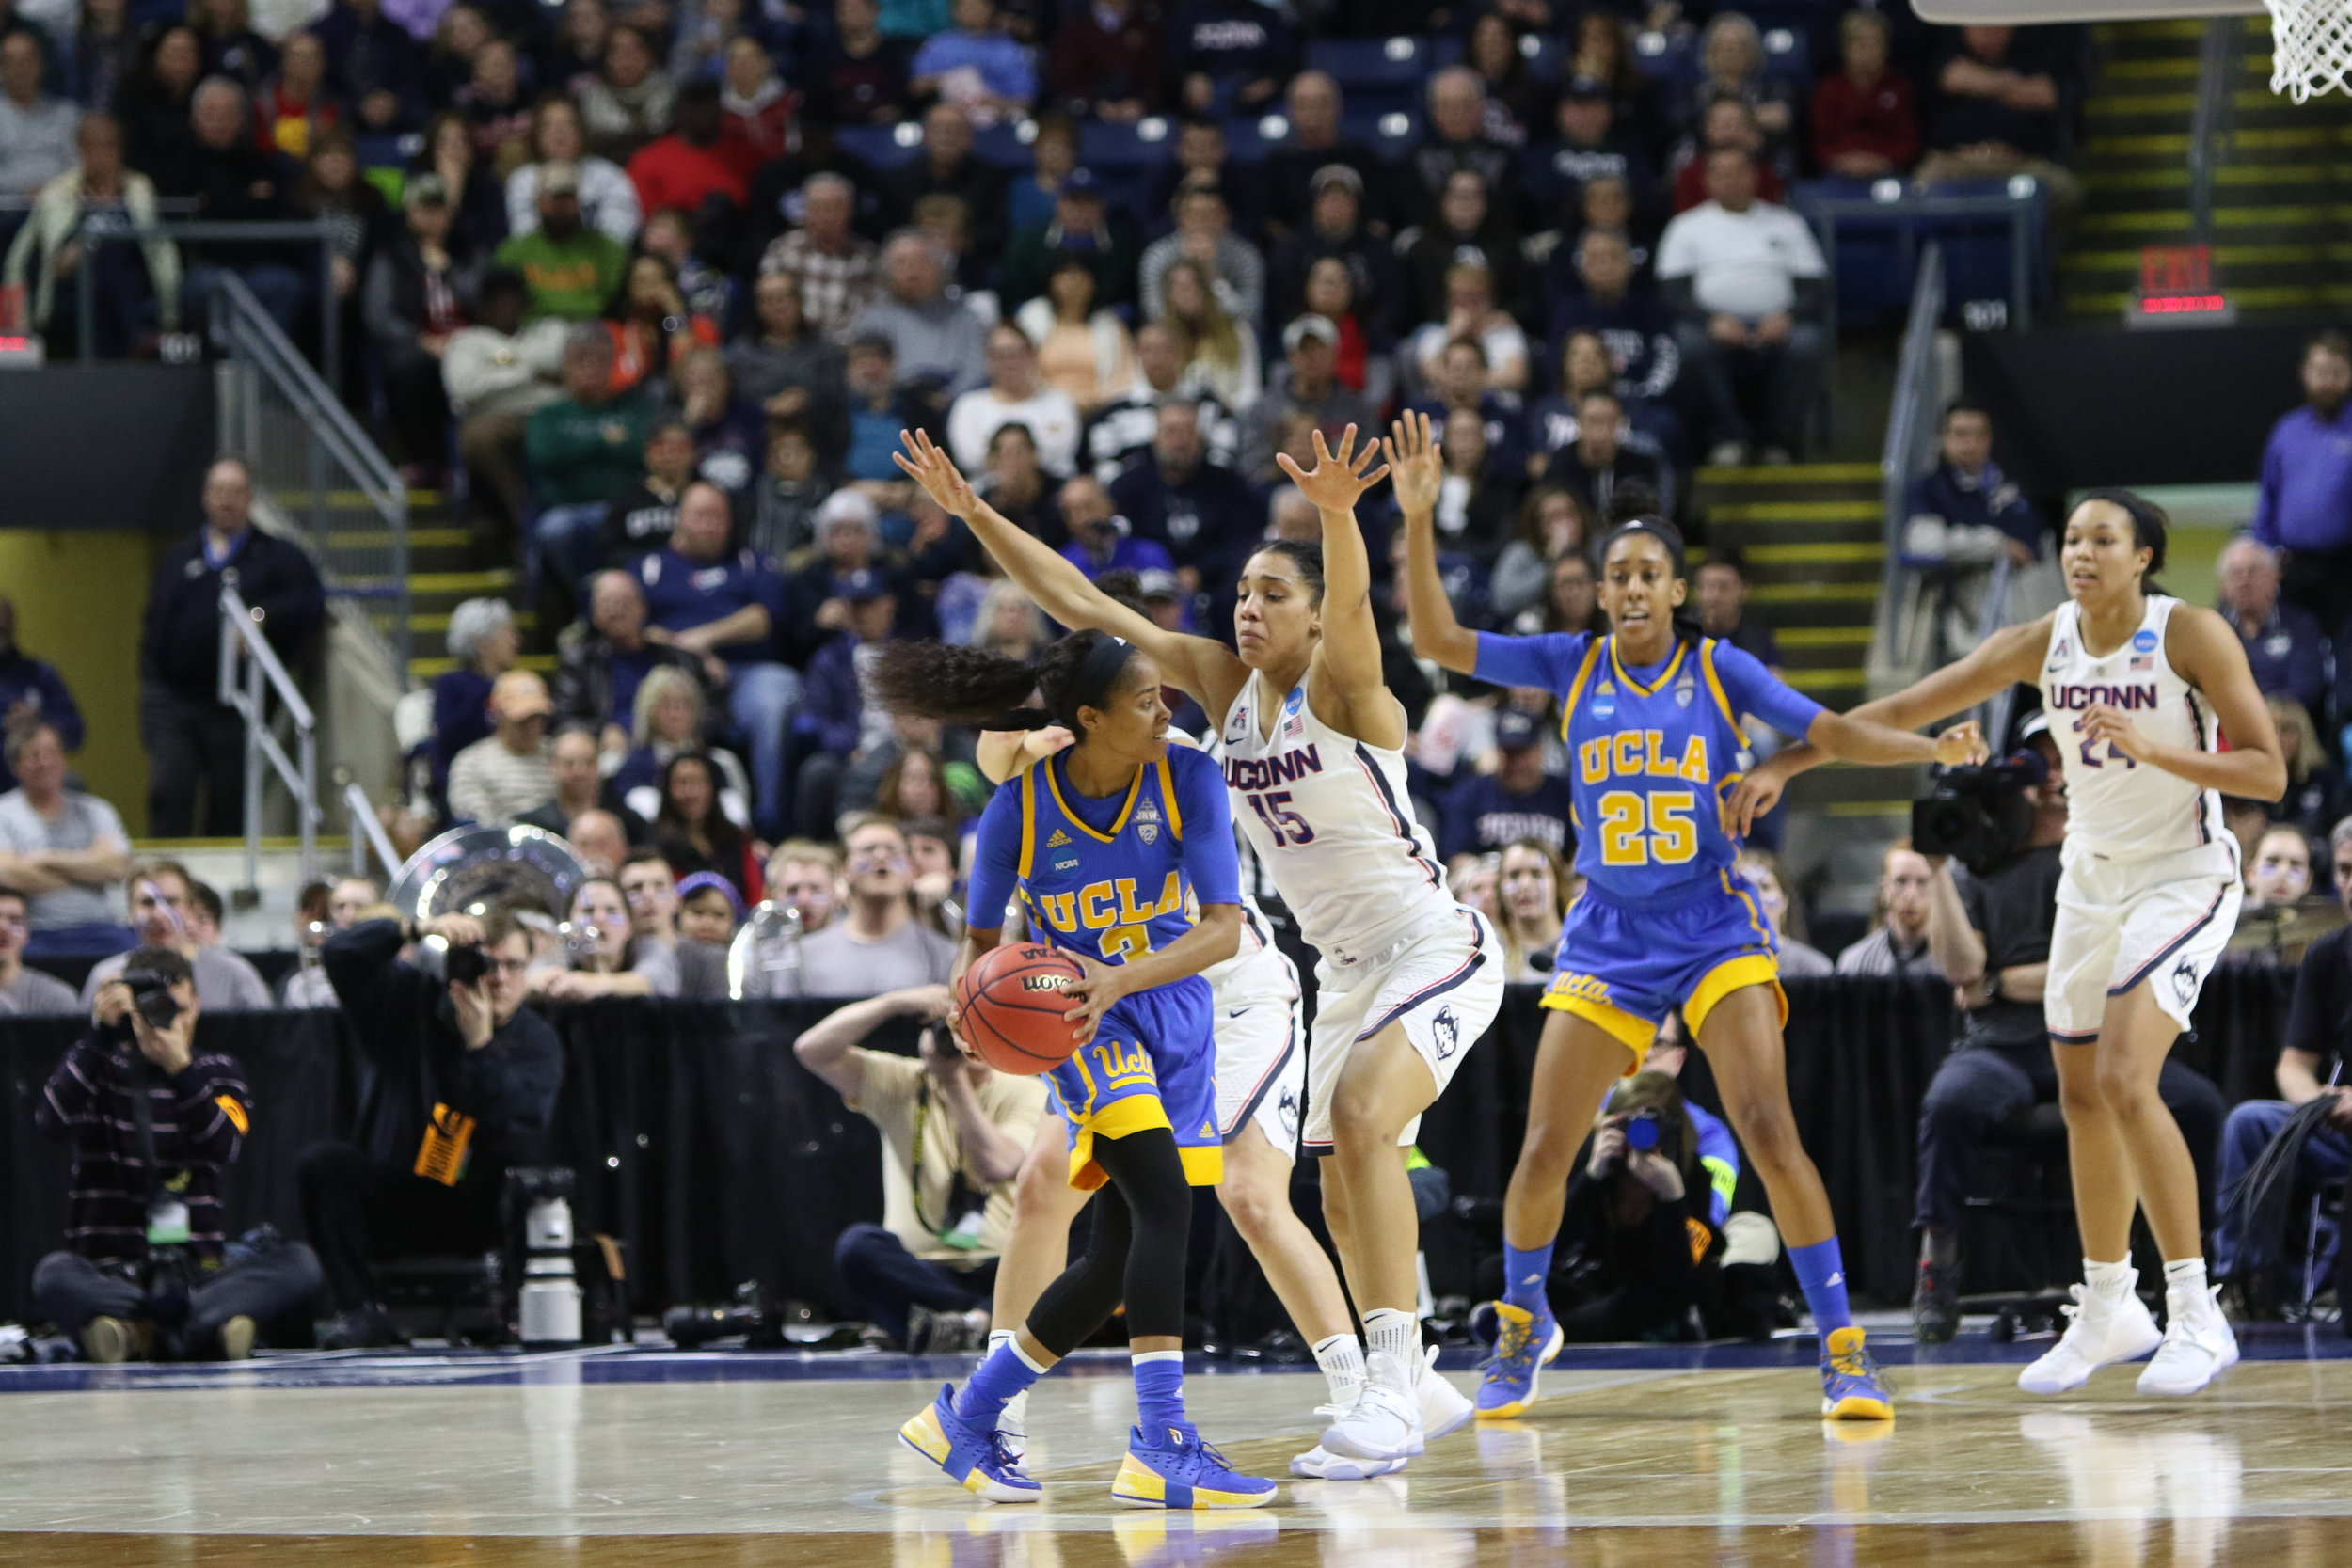 UConn's Gabby Williams (#15) locks down UCLA's Jordin Canada (#3) during the Huskies' blowout Elite 8 victory over the Bruins. (Jackson Haigis/The Daily Campus)